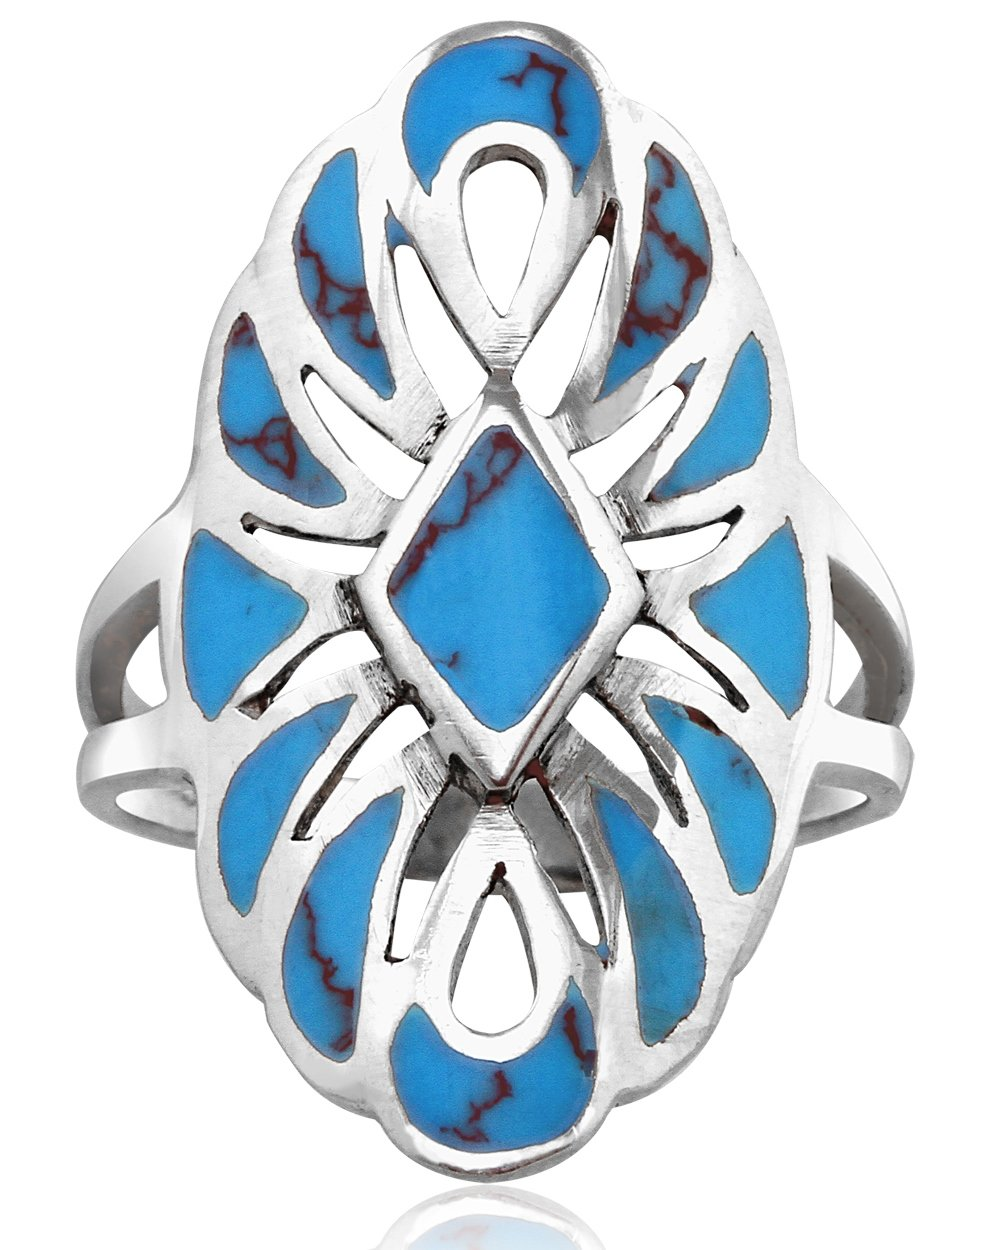 MIMI Sterling Silver Large Southwestern Native American Style Simulated Turquoise Ring (4.5)